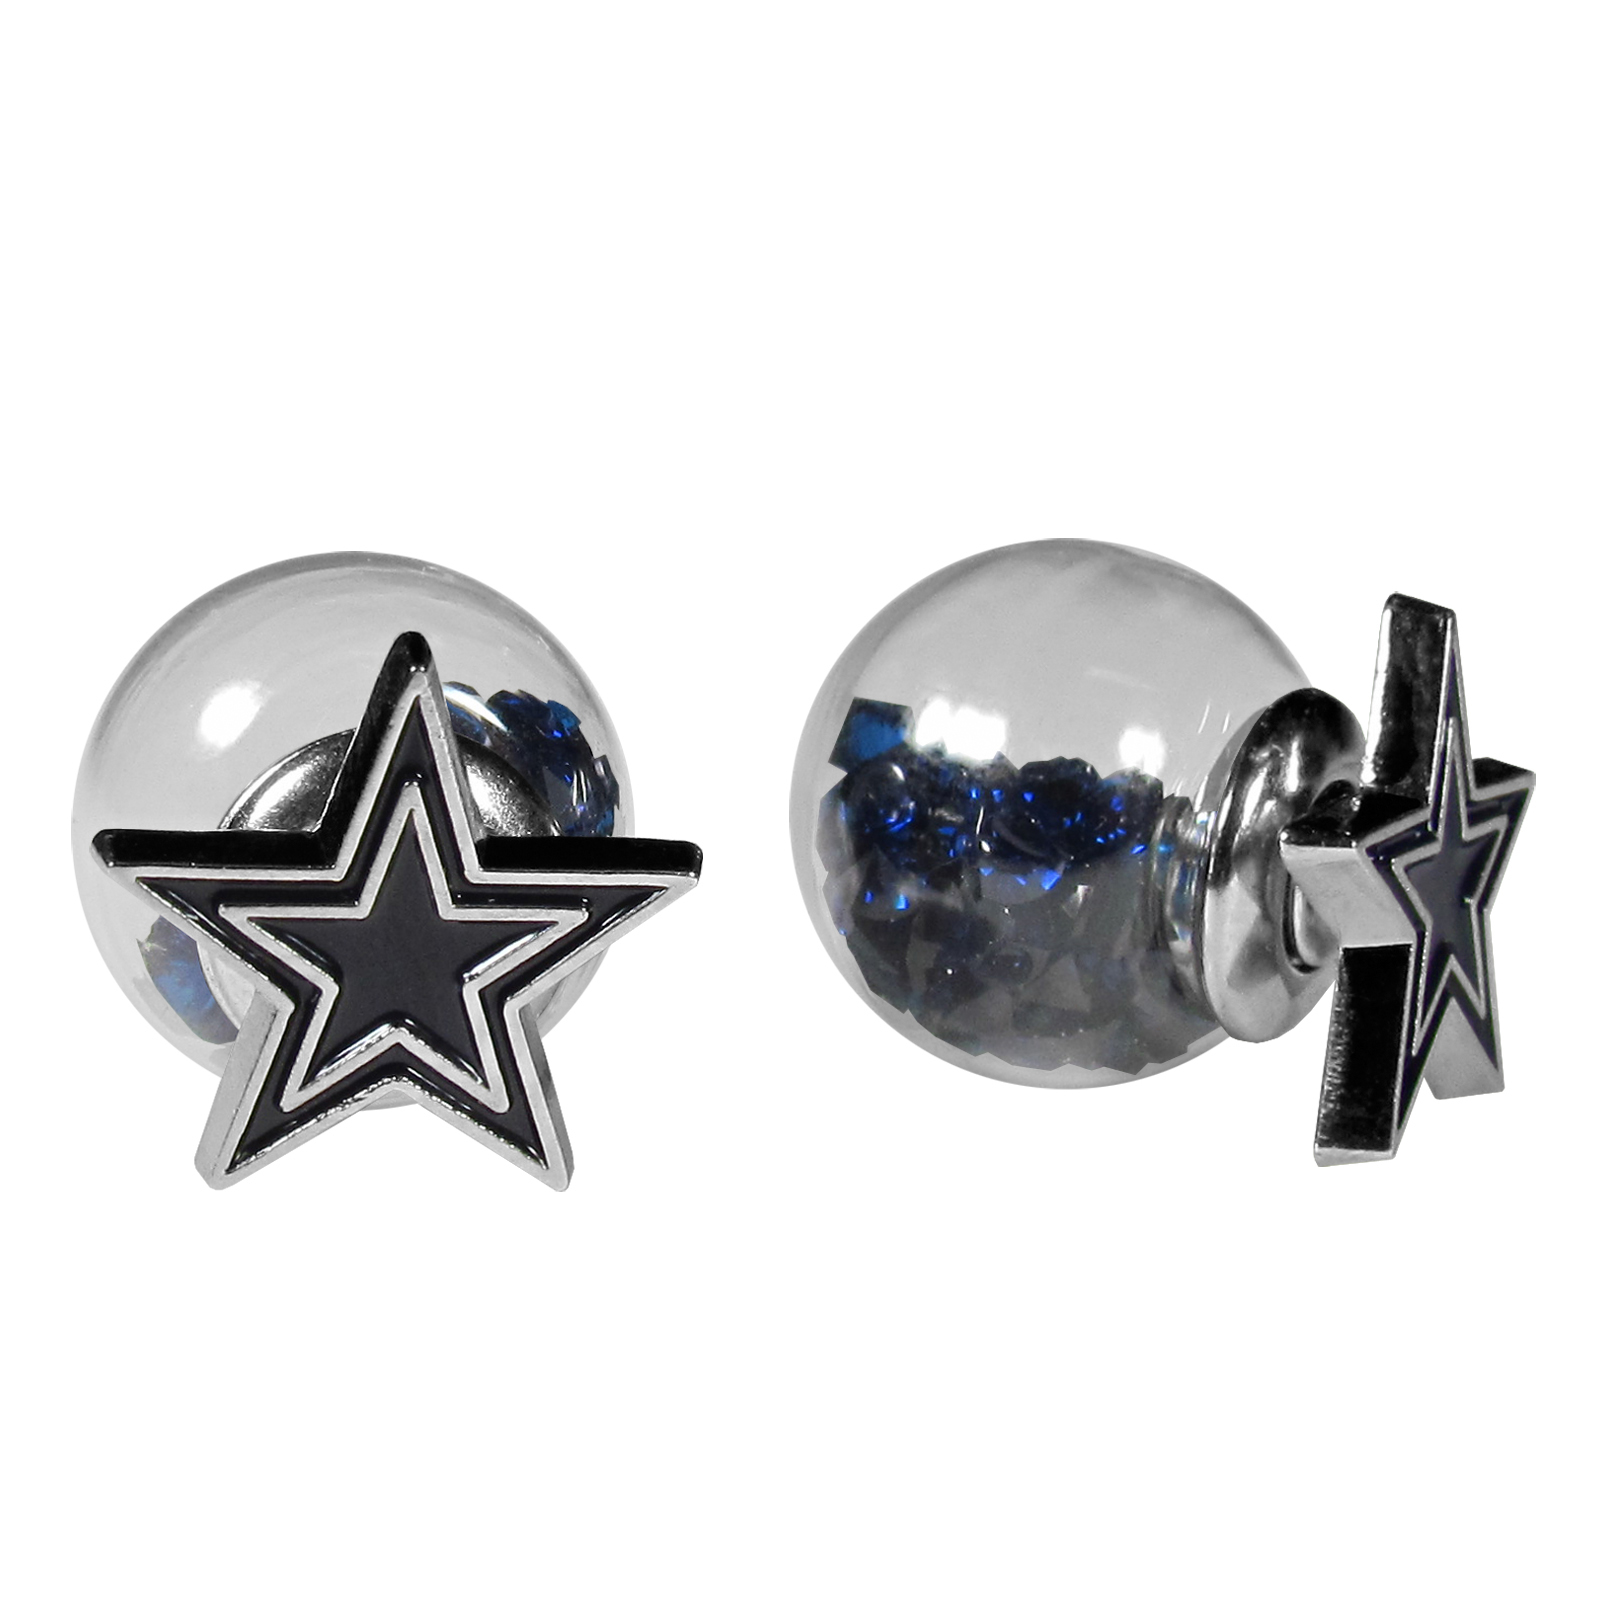 Dallas Cowboys Front/Back Earrings - Get in on one of the most popular trends in jewelry, front and back earrings! This must-have style is all of over the red carpets and we taken this contemporary look and paired it with your love of the Dallas Cowboys! The front of the earring is a sporty team logo and the back of these eye-catching earrings is a glass ball filled with colored crystal beads. This piece is perfect for a fashion-forward fan, with bold taste and trend-setting style.